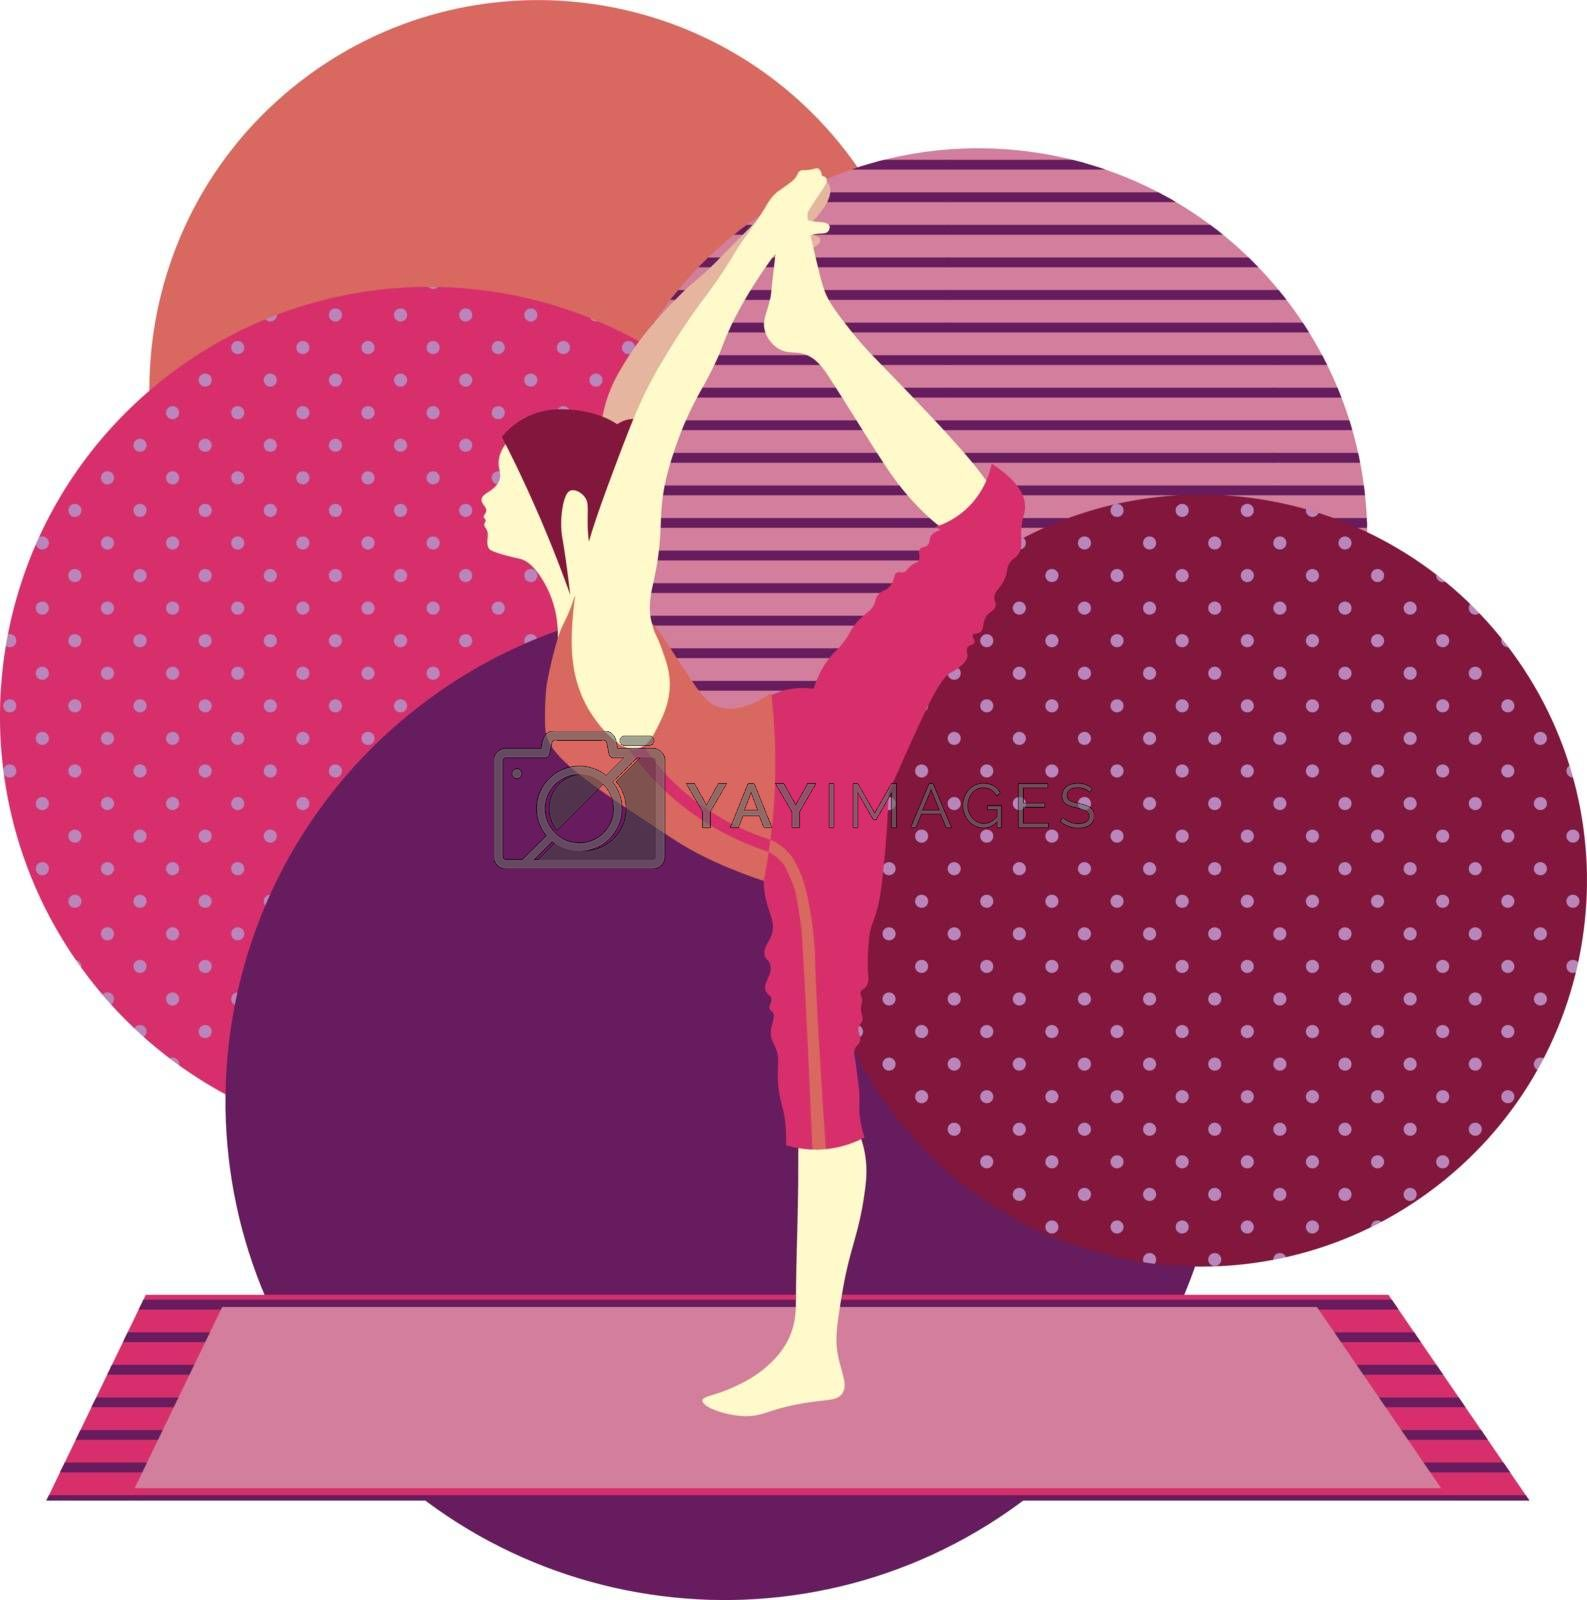 colorful illustration with cute faceless gril doing lord of dance asana on purple background